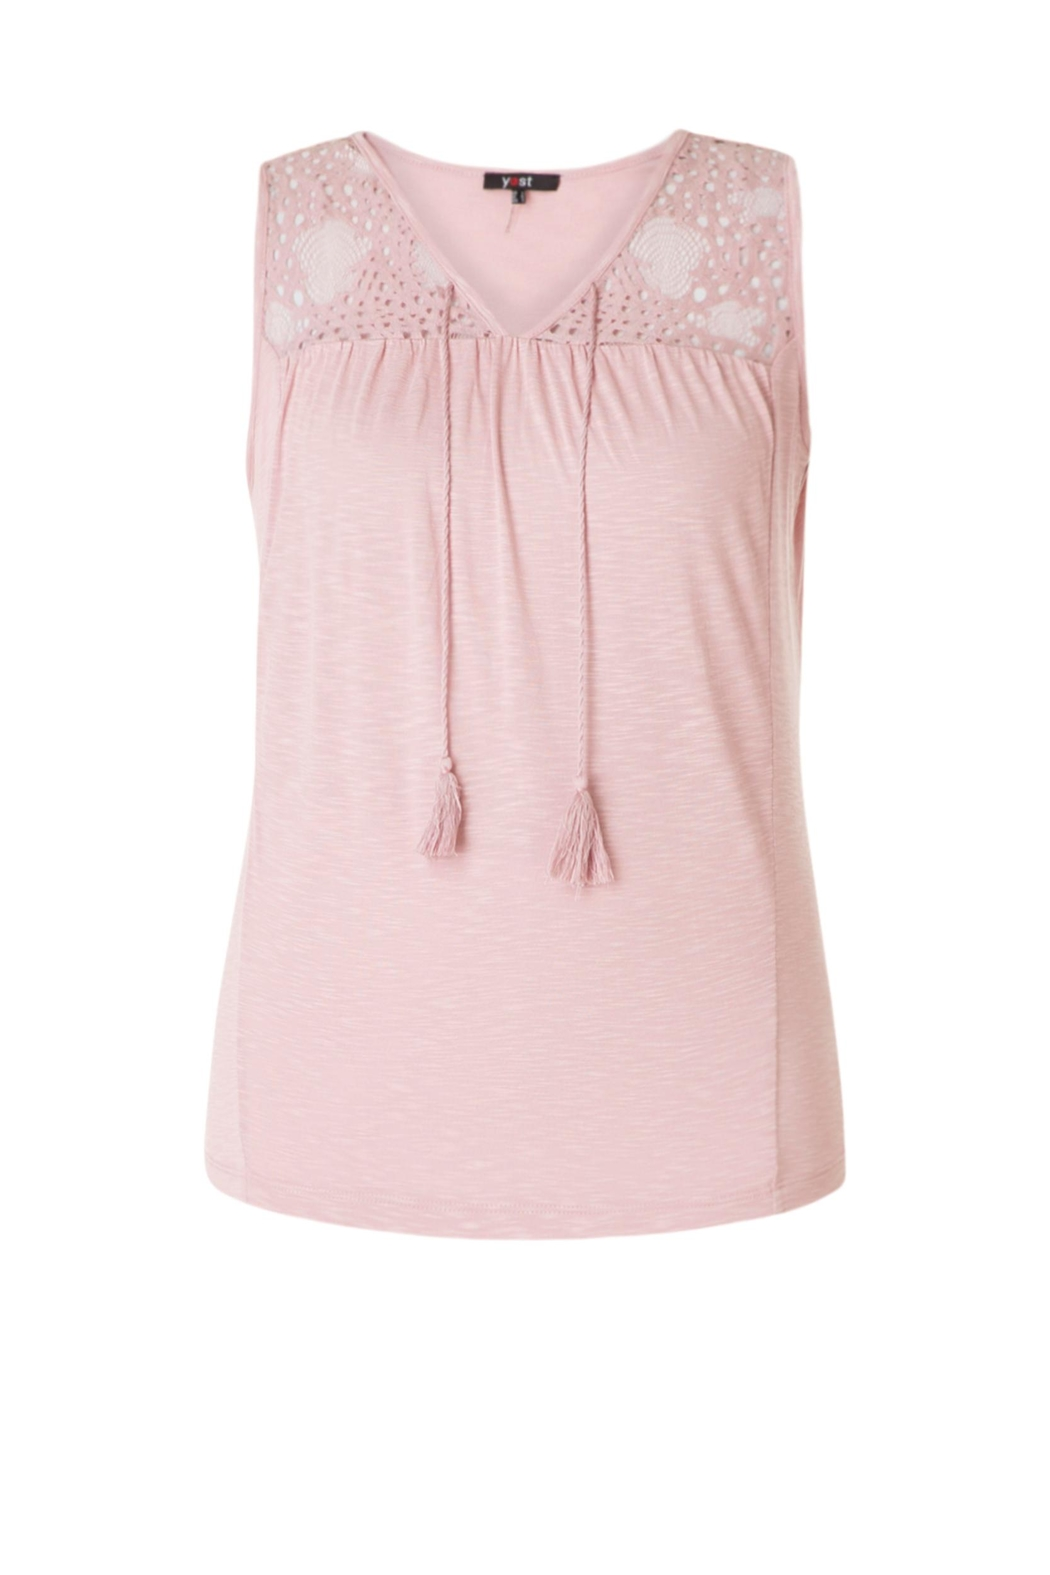 Yest Lace Tie Top - Side Cropped Image